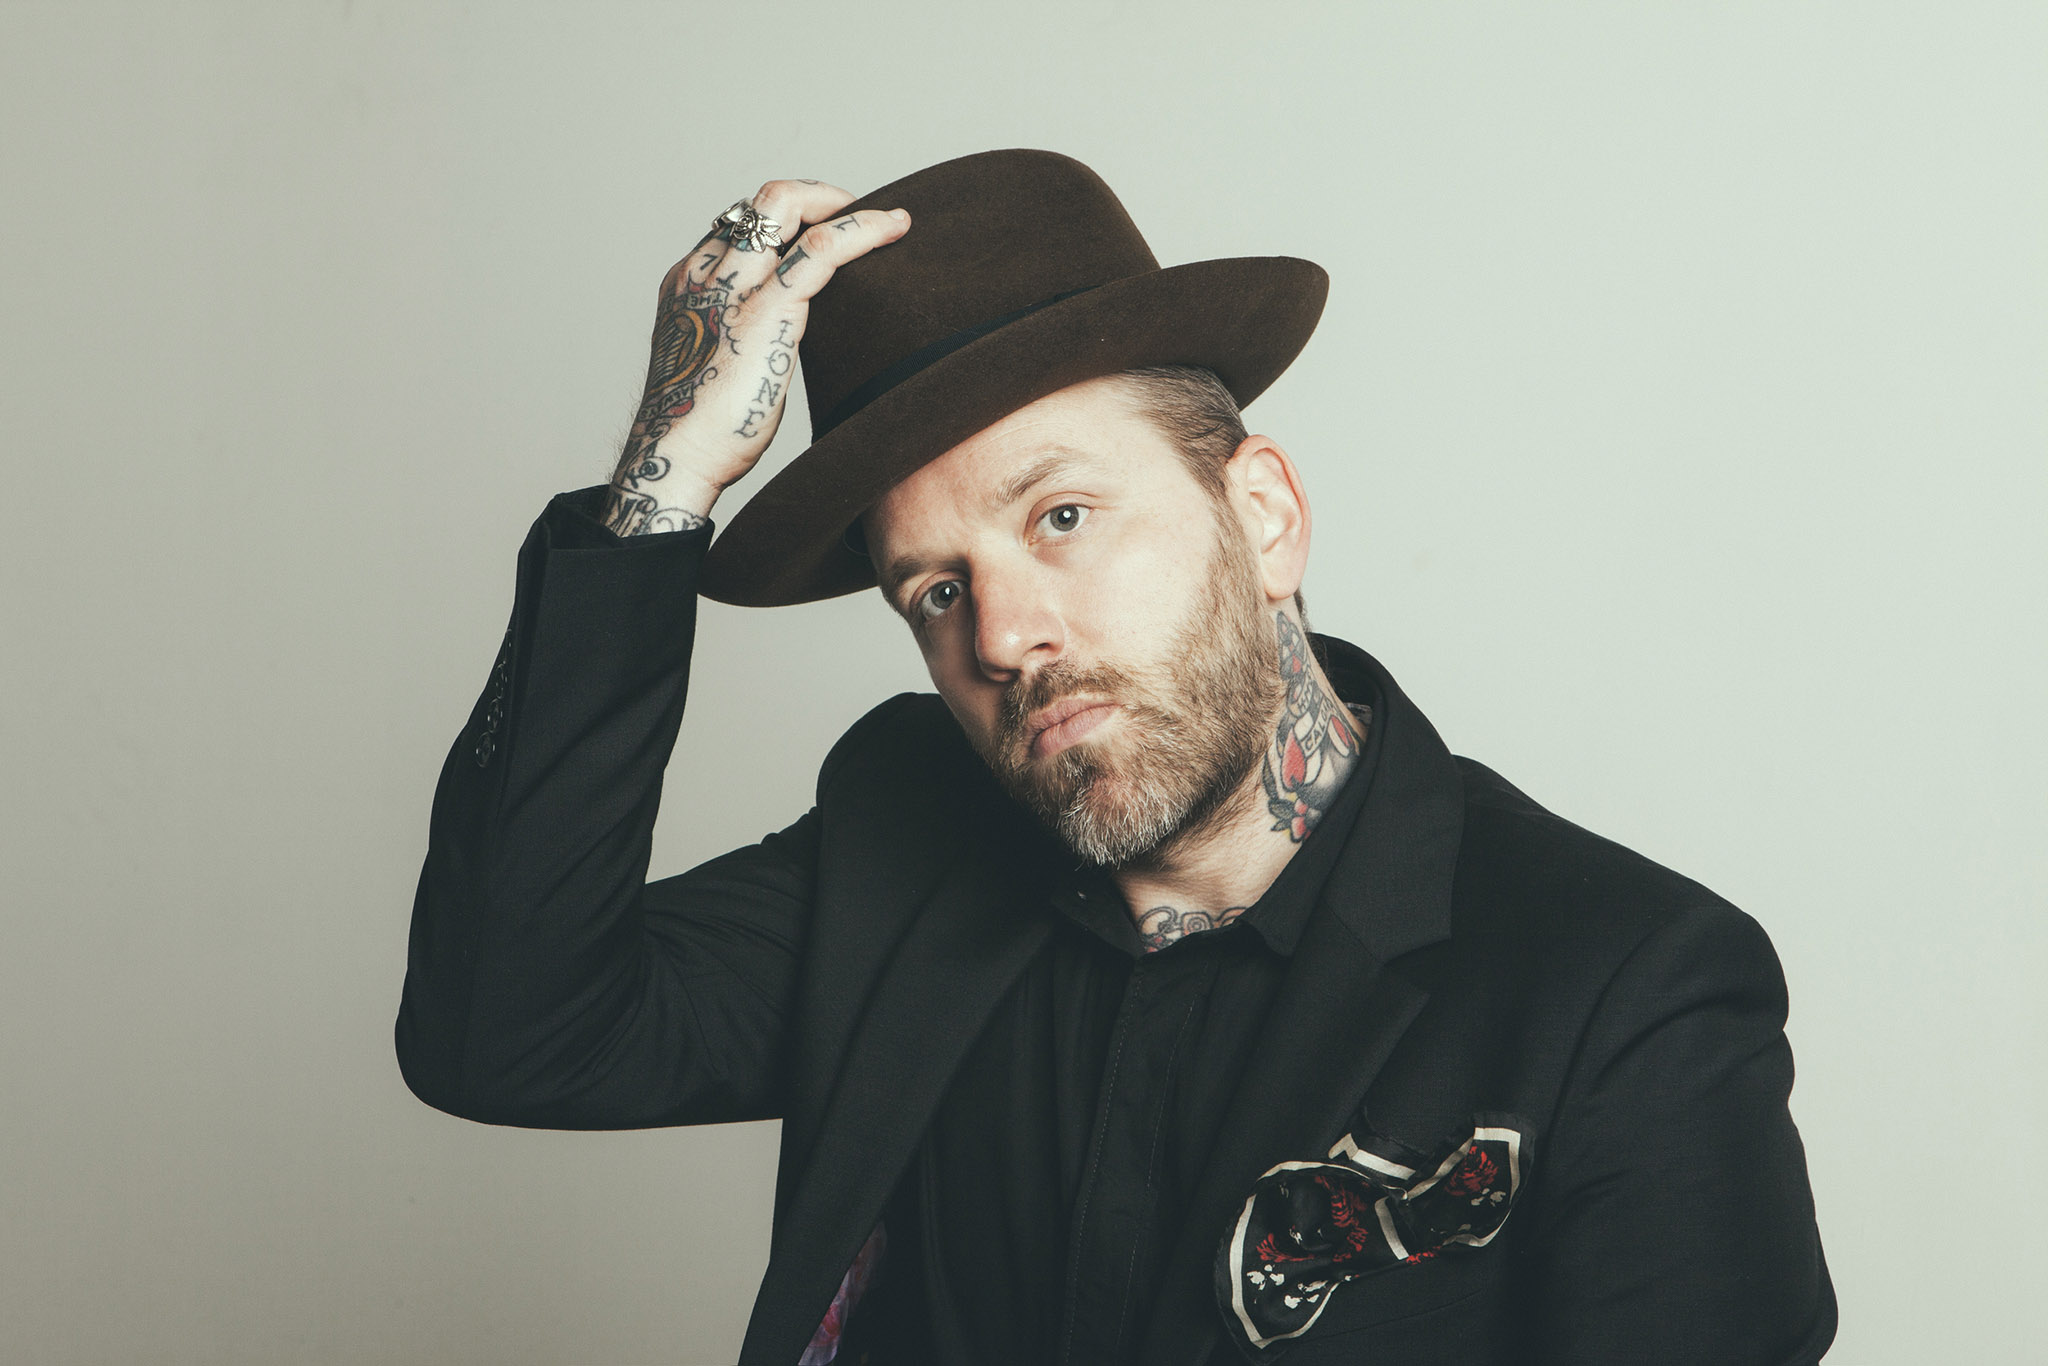 City and Colour previews new album with 'Wasted Love'